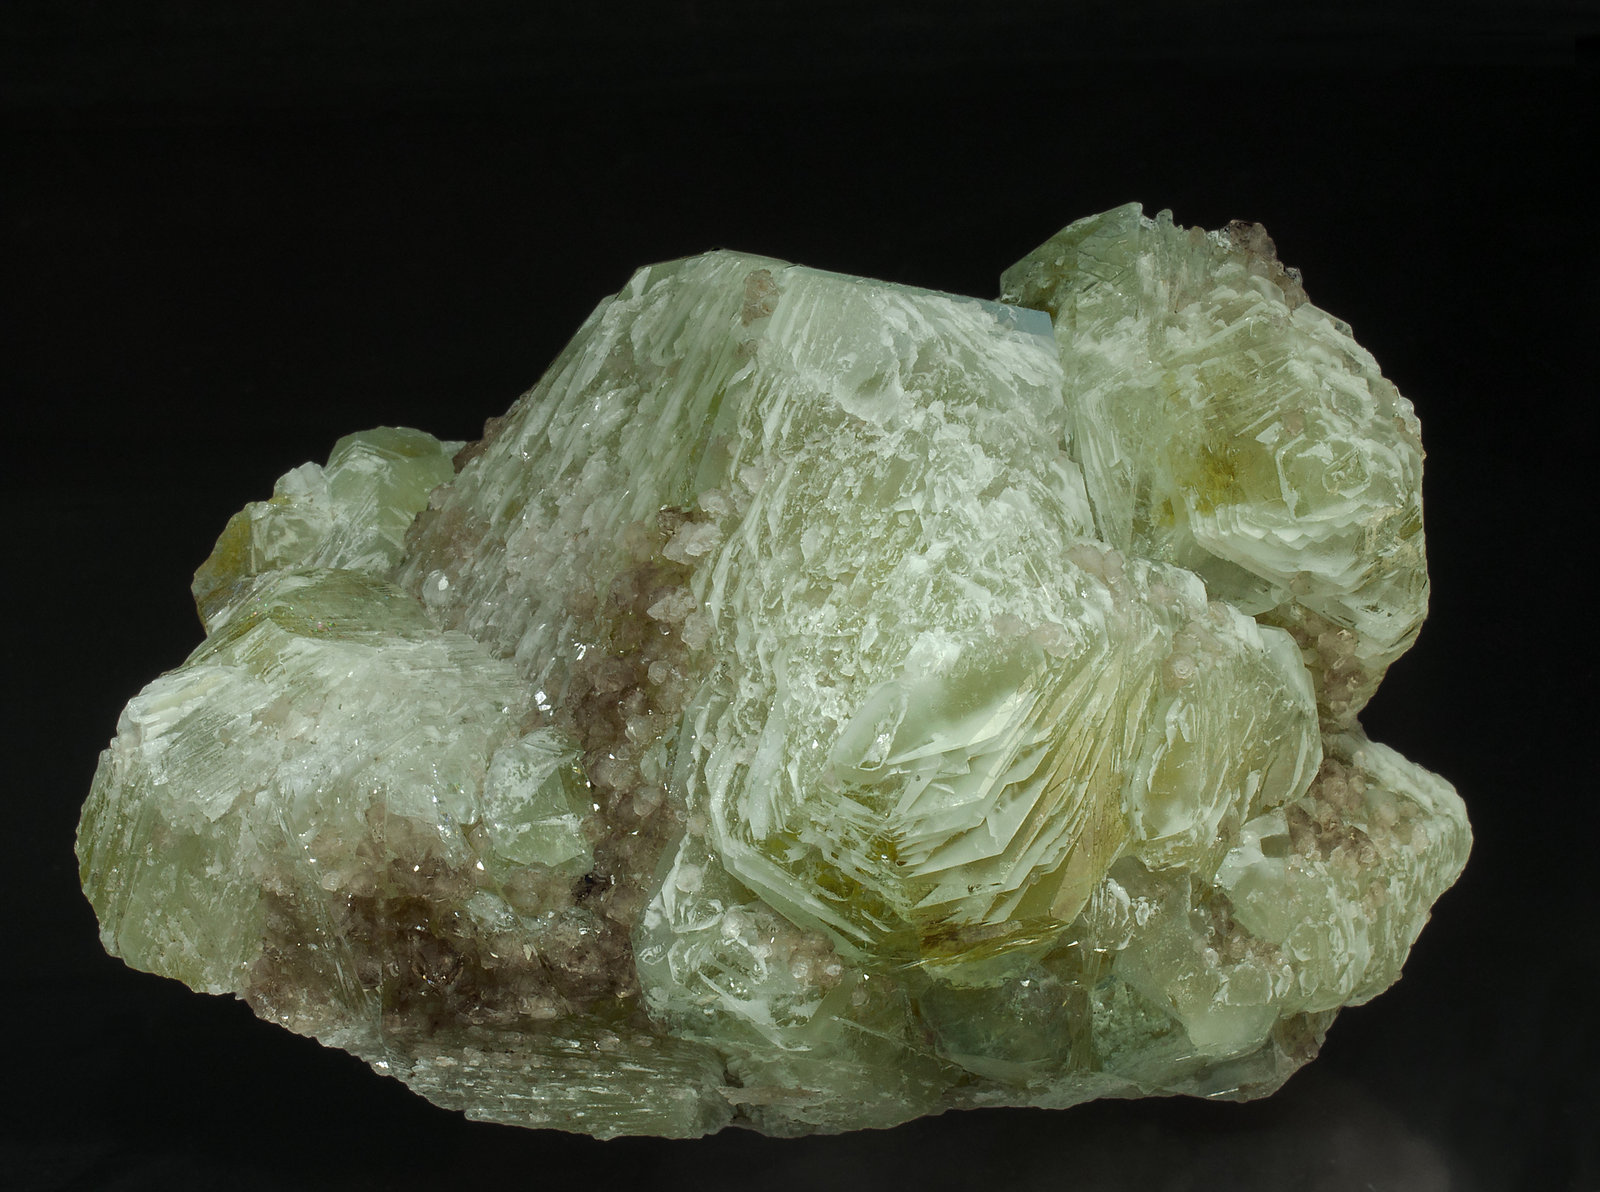 specimens/s_imagesZ1/Datolite-MC97Z1f.jpg